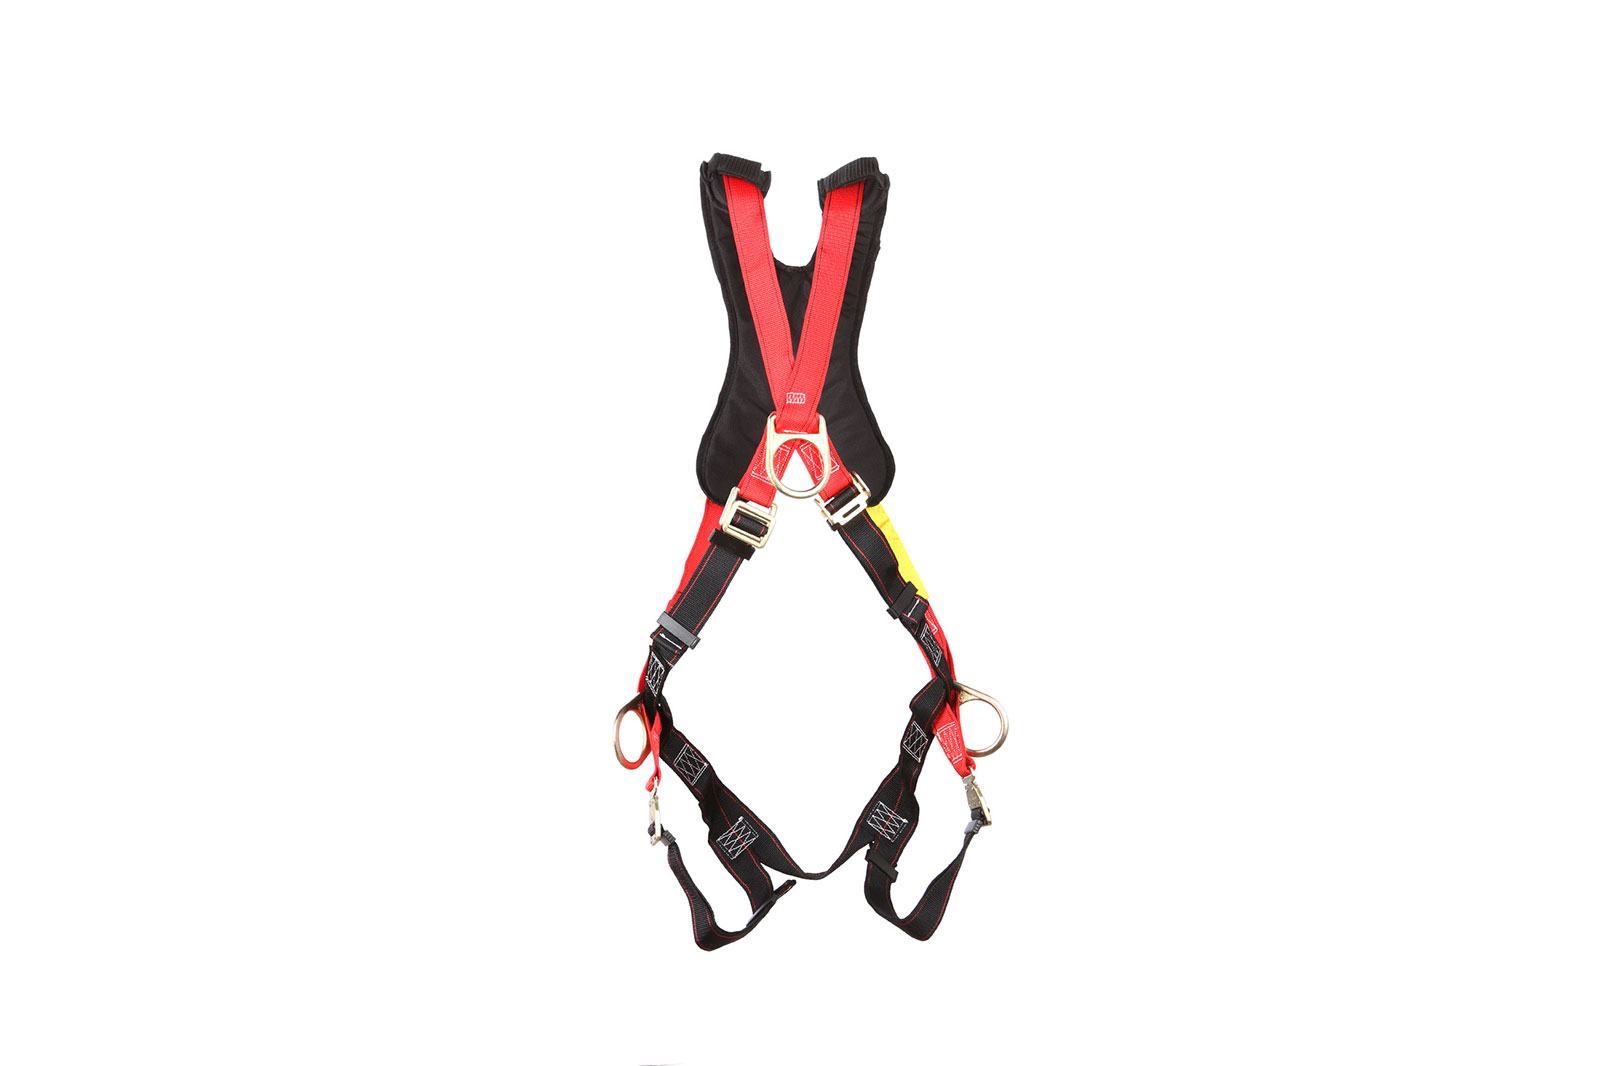 Sl Tech Crossed Style Fall Protection Harness With